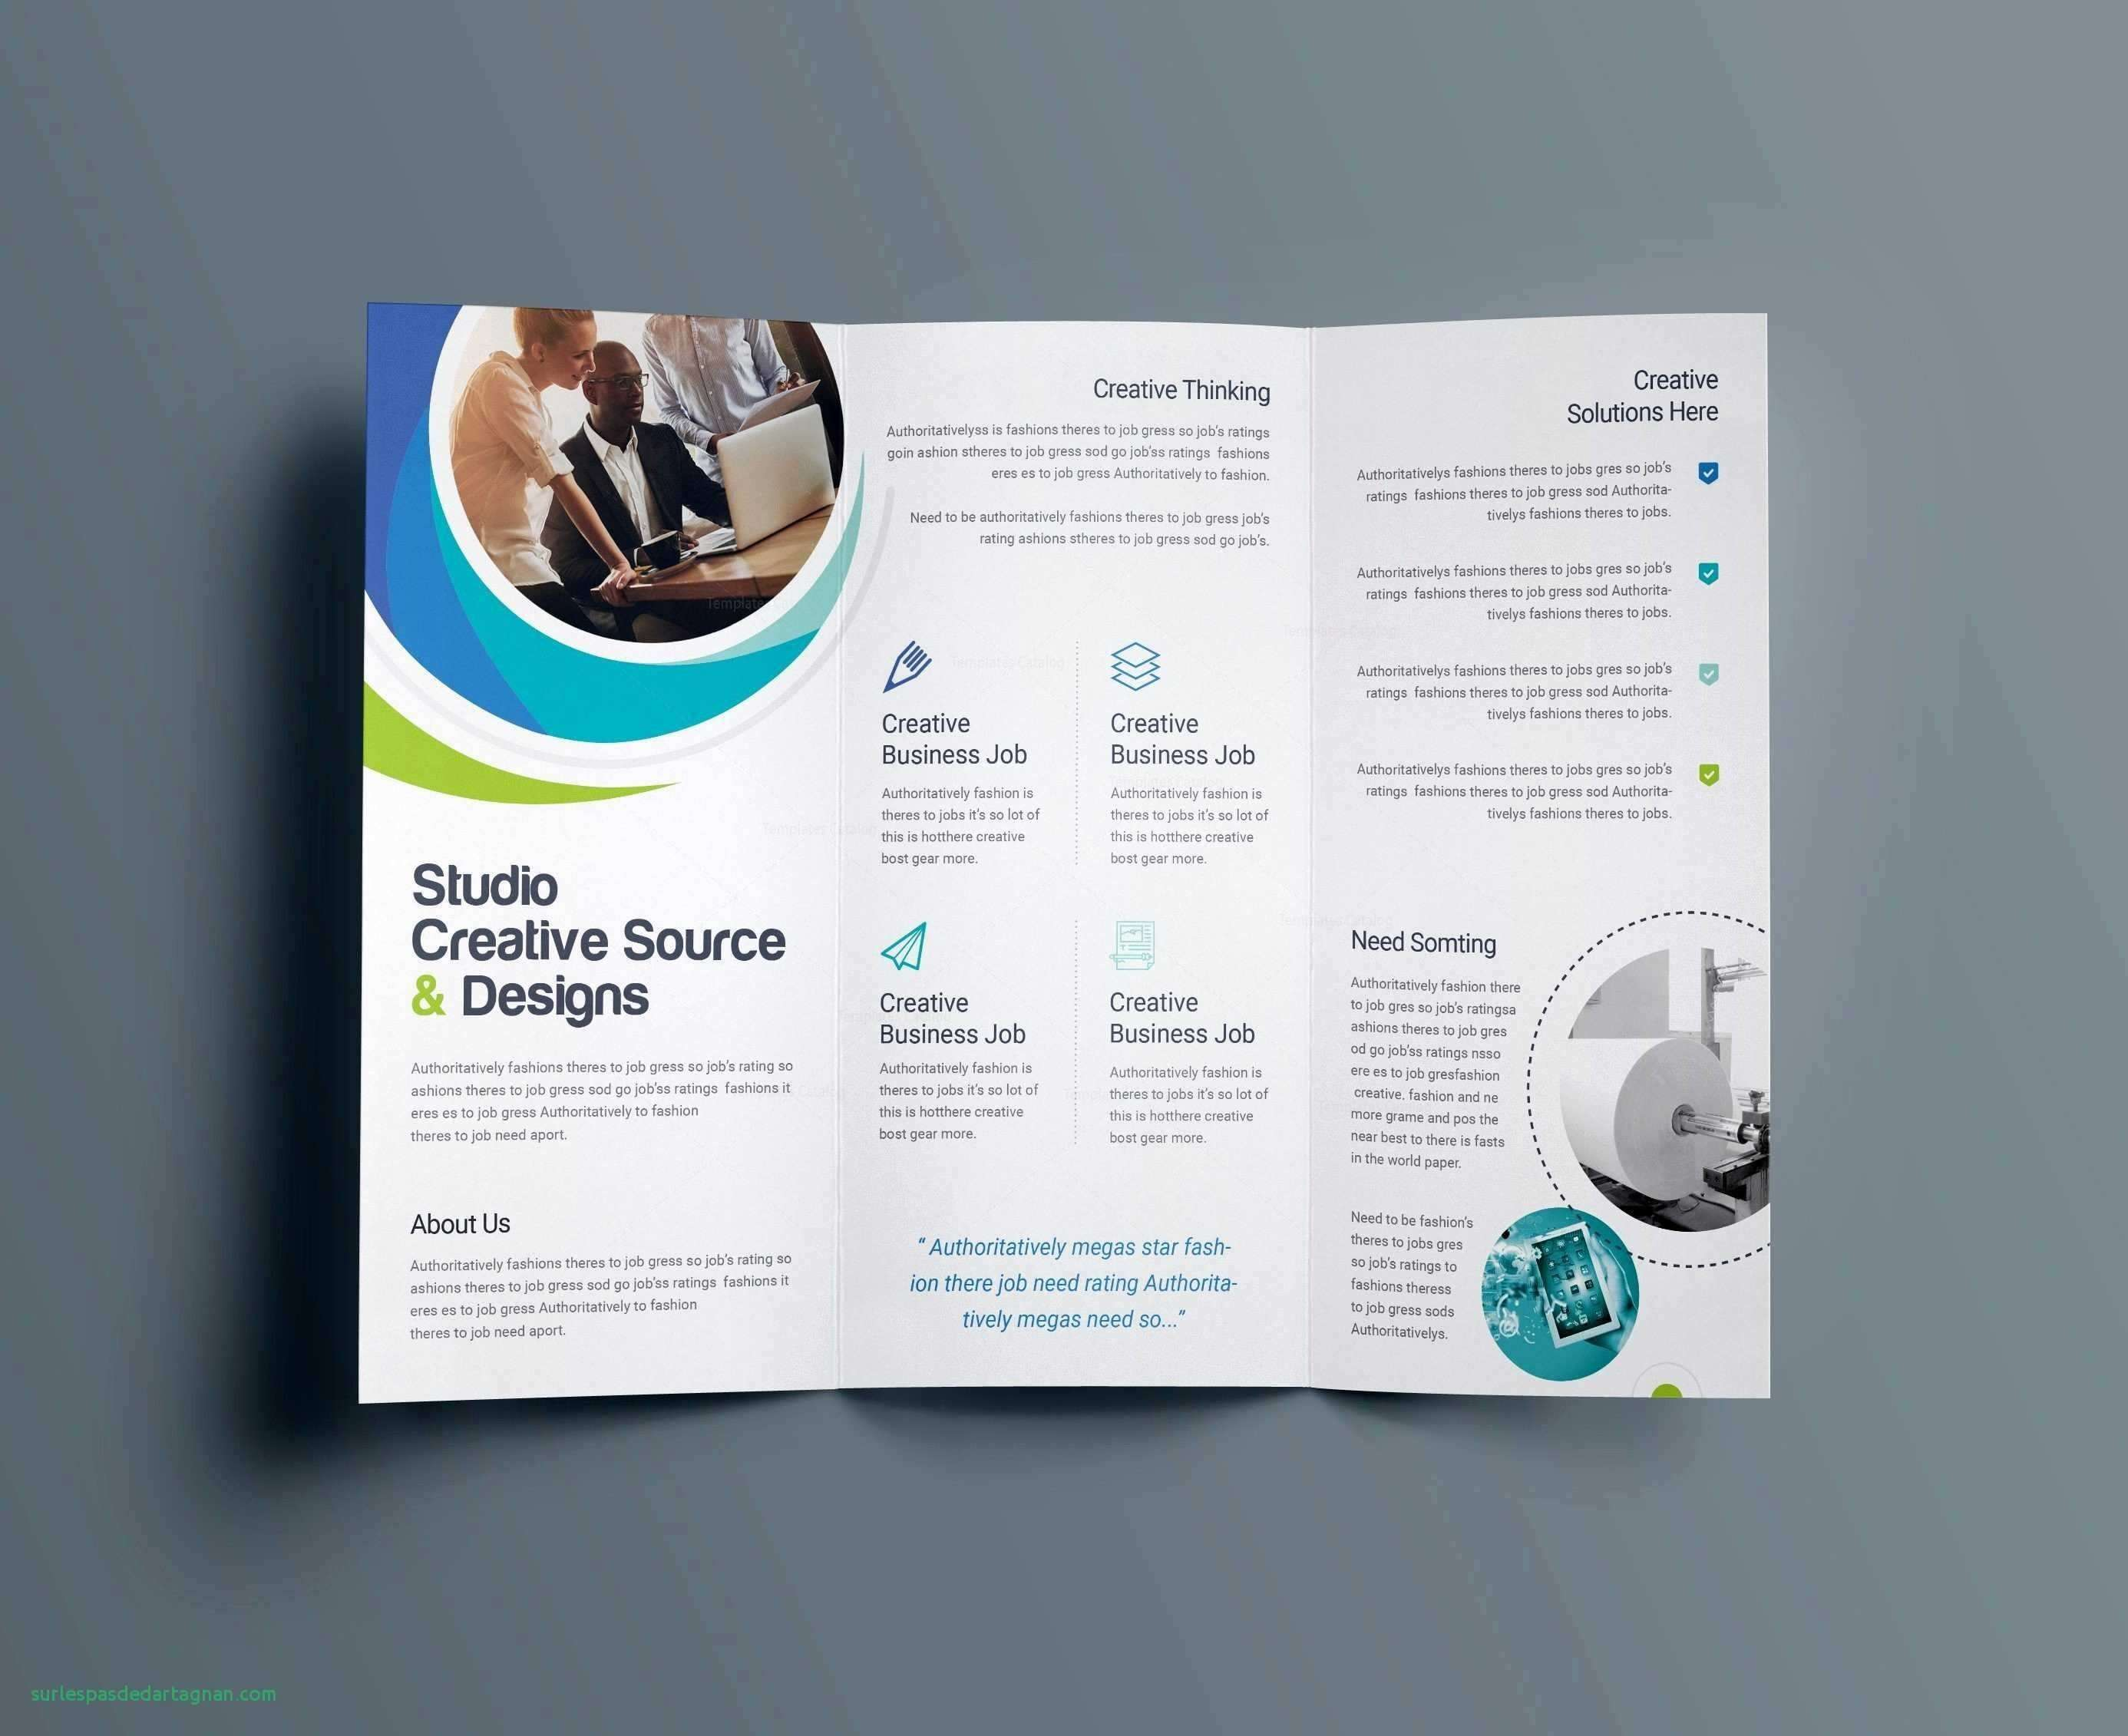 Business Case Study Template Ppt Awesome Most Professional Powerpoint Template Inspirational ¢‹?…¡ Free